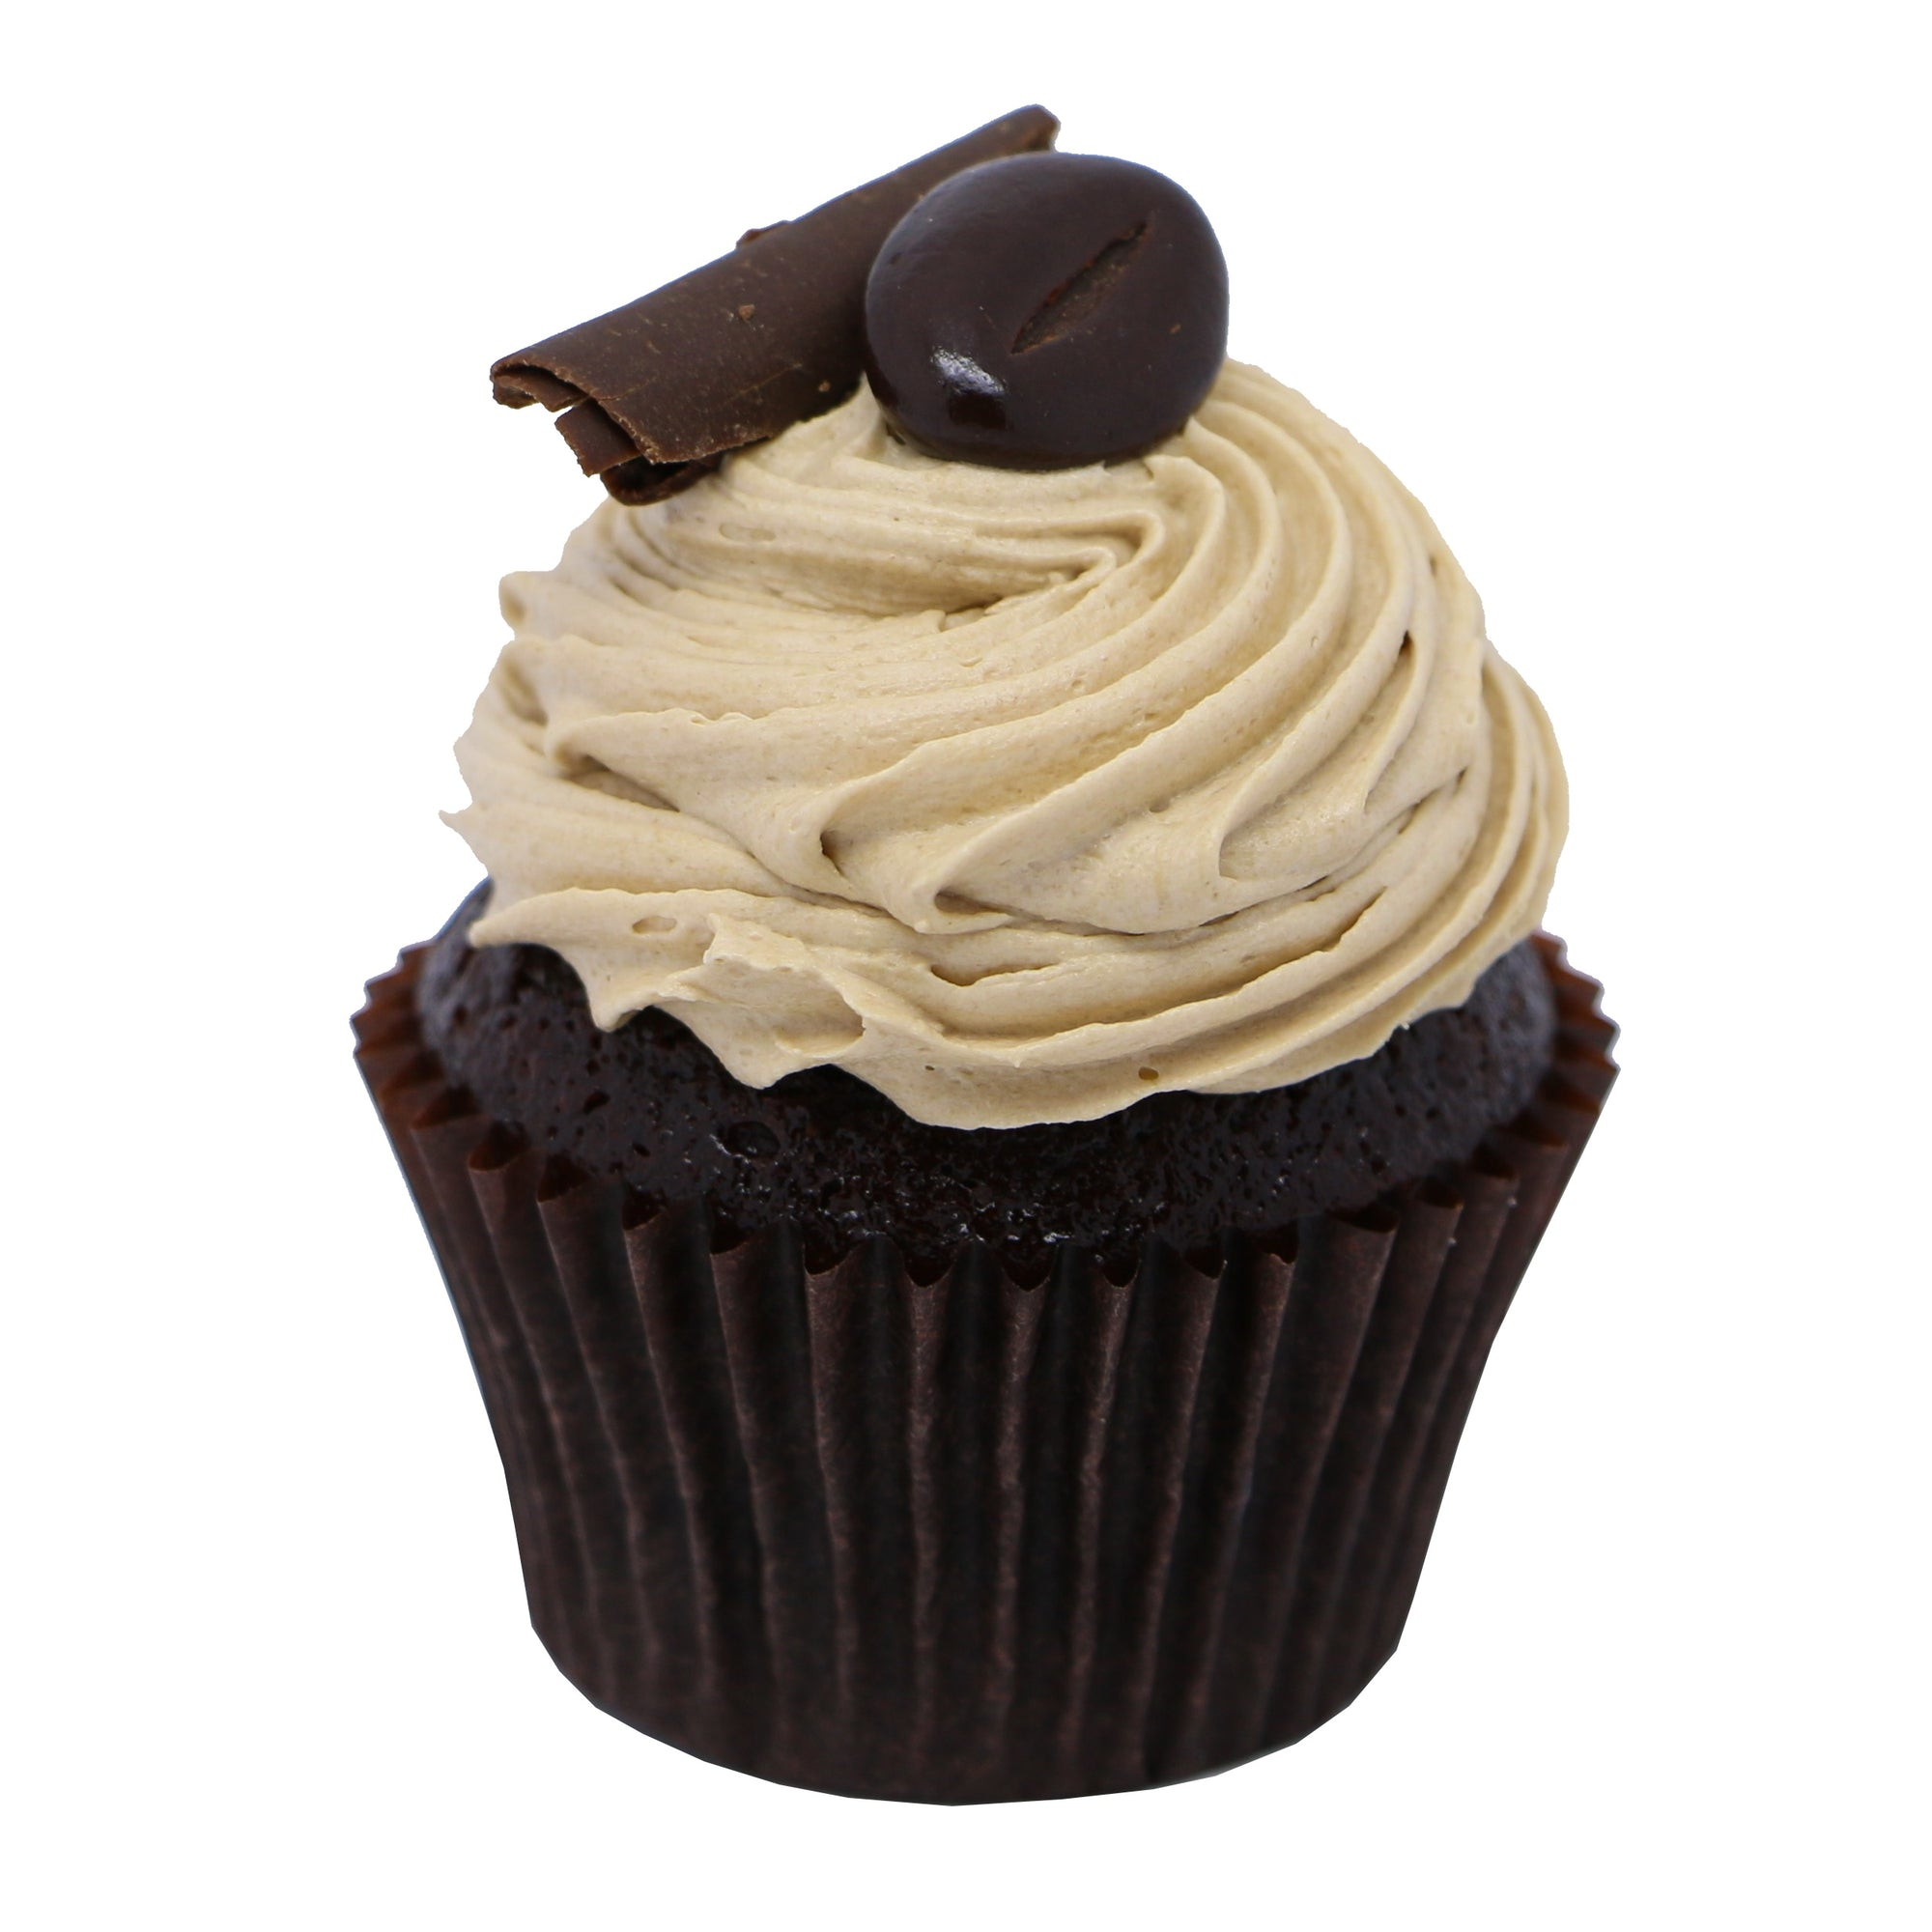 Mini Cupcake - Mocha - Treats2eat - Wedding & Birthday Party Dessert Catering Near Me